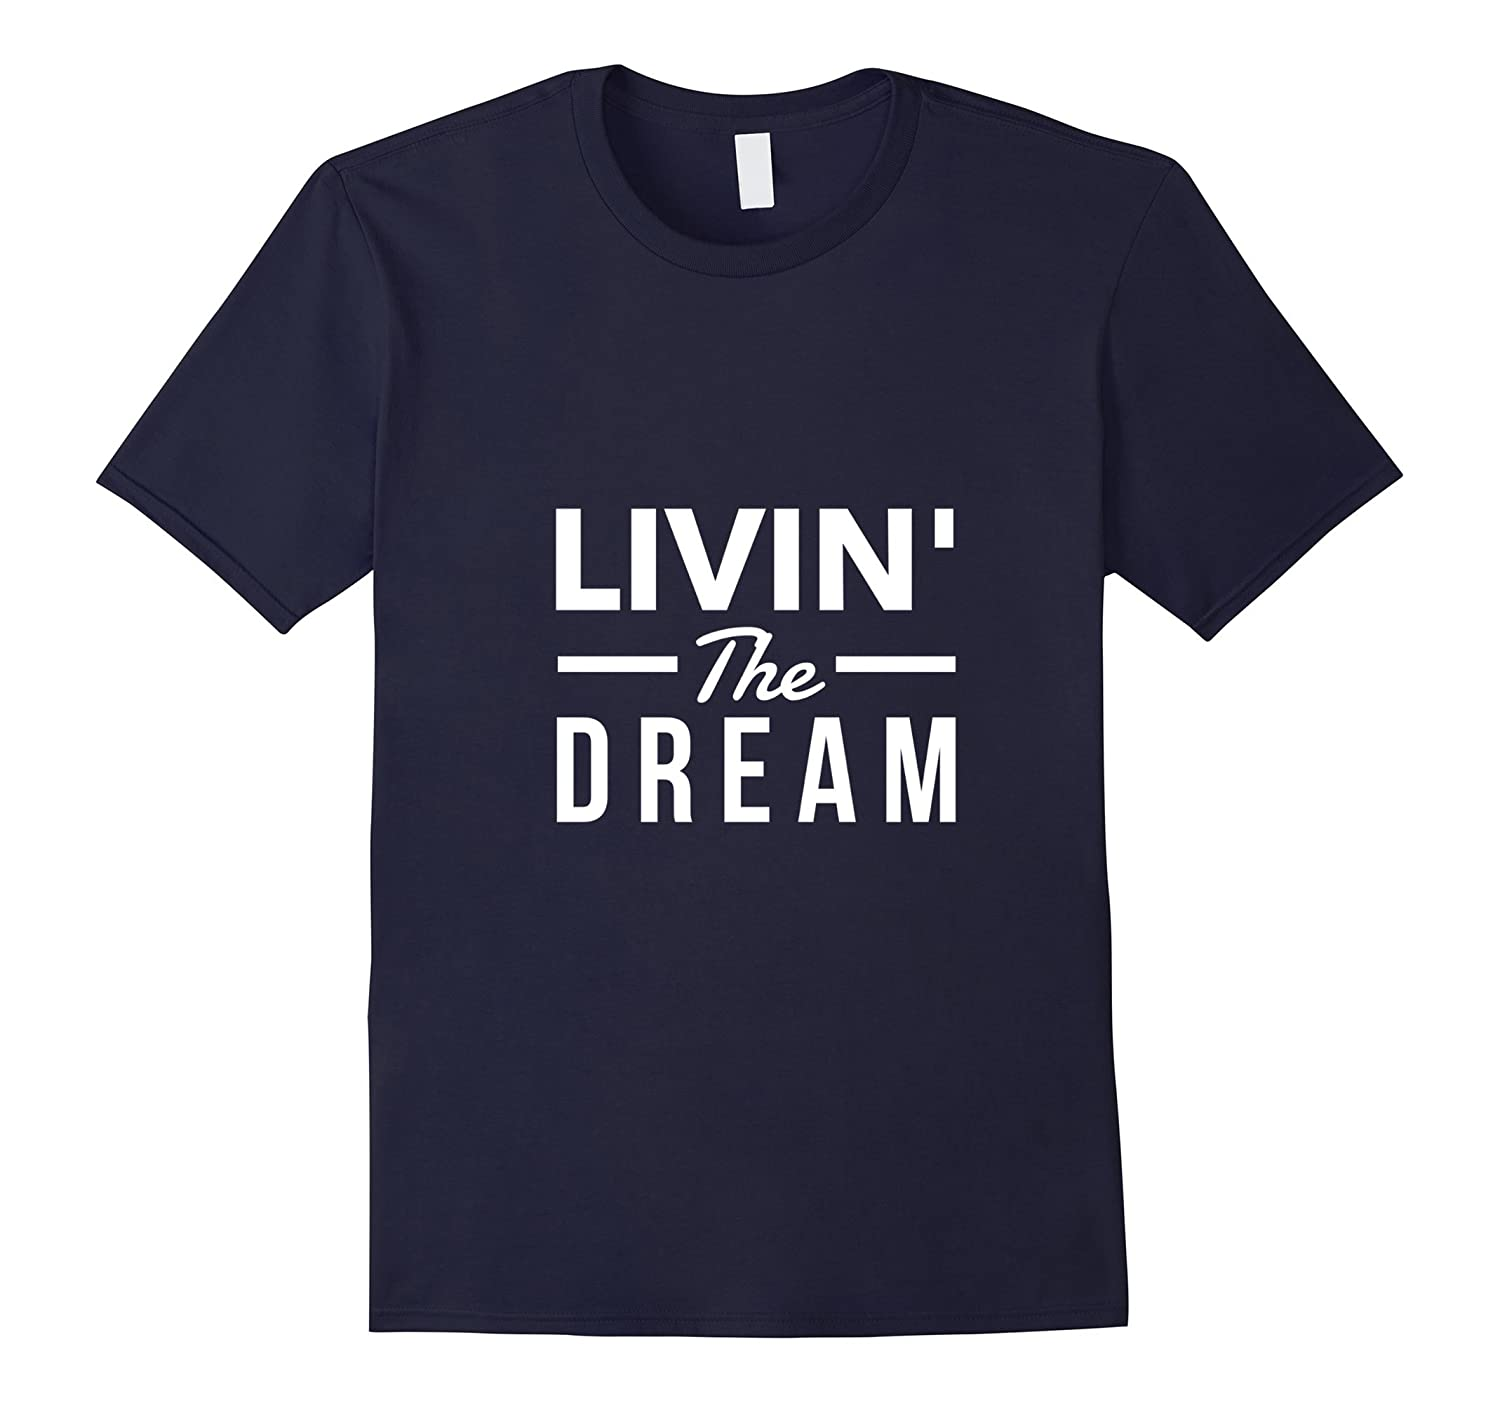 Livin' the Dream- Livin' the Dream t-shirt-Art